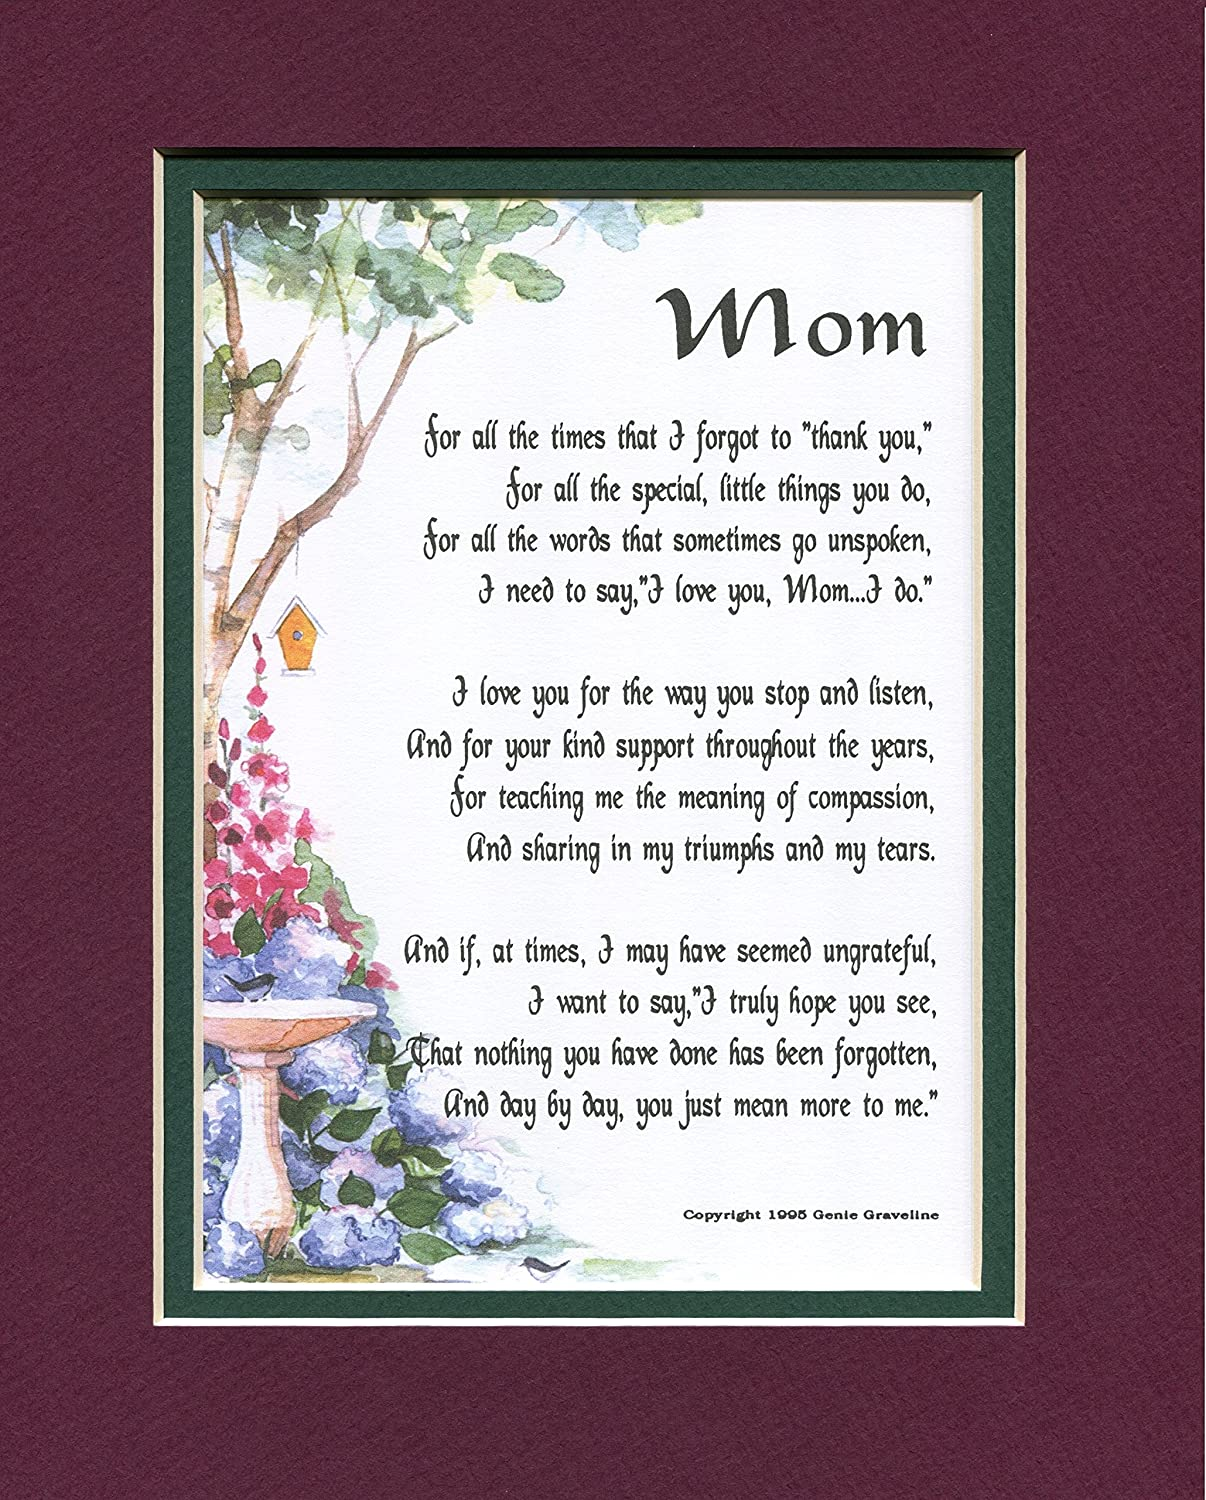 Amazon Com Mom Poem Mother Poem Mom Print Mother Print Mom Verse Mother Verse Mom Saying Mother Saying 8x10 Double Matted Print Moms Birthday Mothers Birthday Home Decor Gift Packages Posters Prints Honor your mother with these wonderful poems. mom poem mother poem mom print mother print mom verse mother verse mom saying mother saying 8x10 double matted print moms birthday mothers